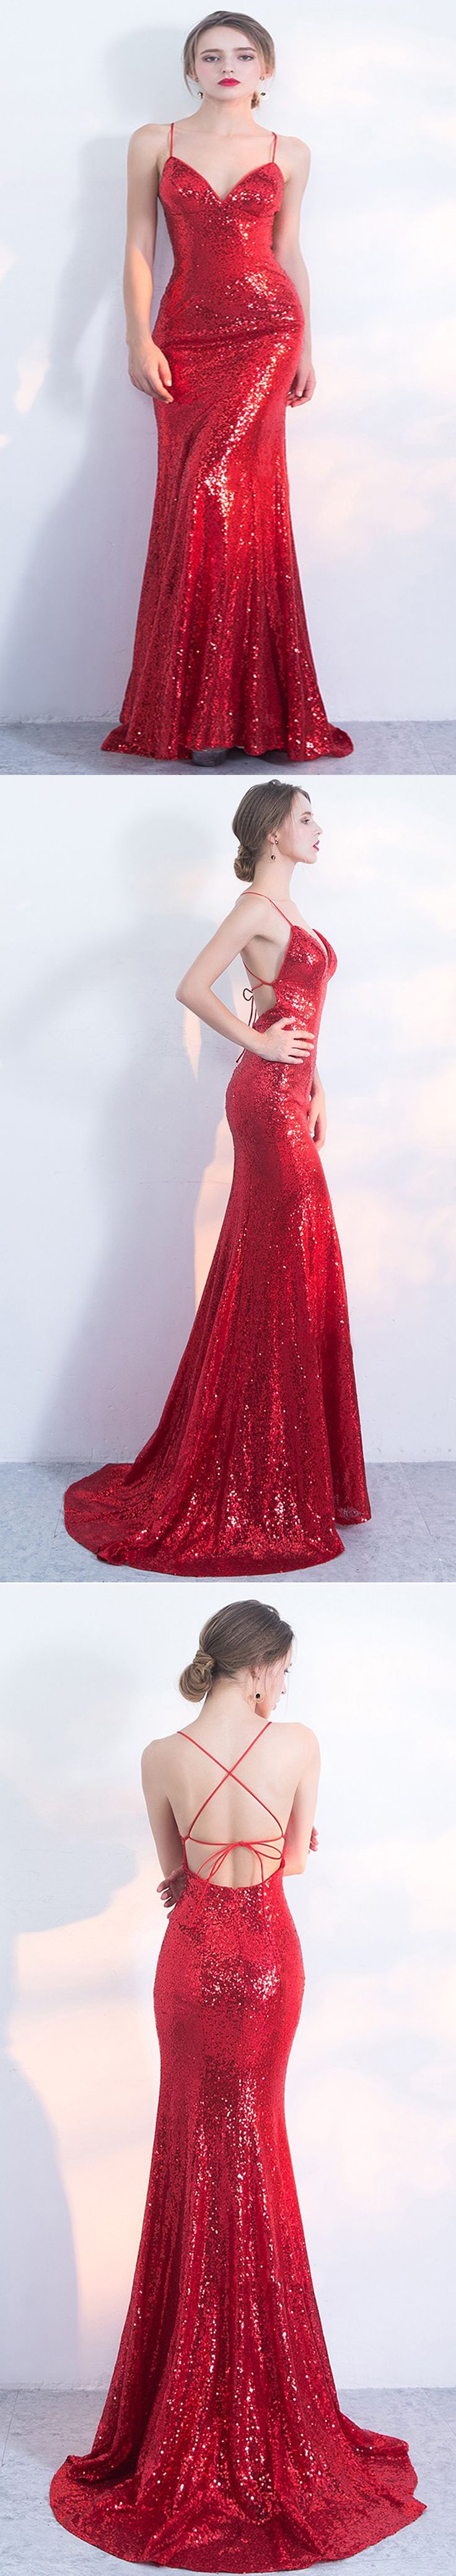 Sexy red mermaid prom dress, Sparkly sequins party dresses,PD210120